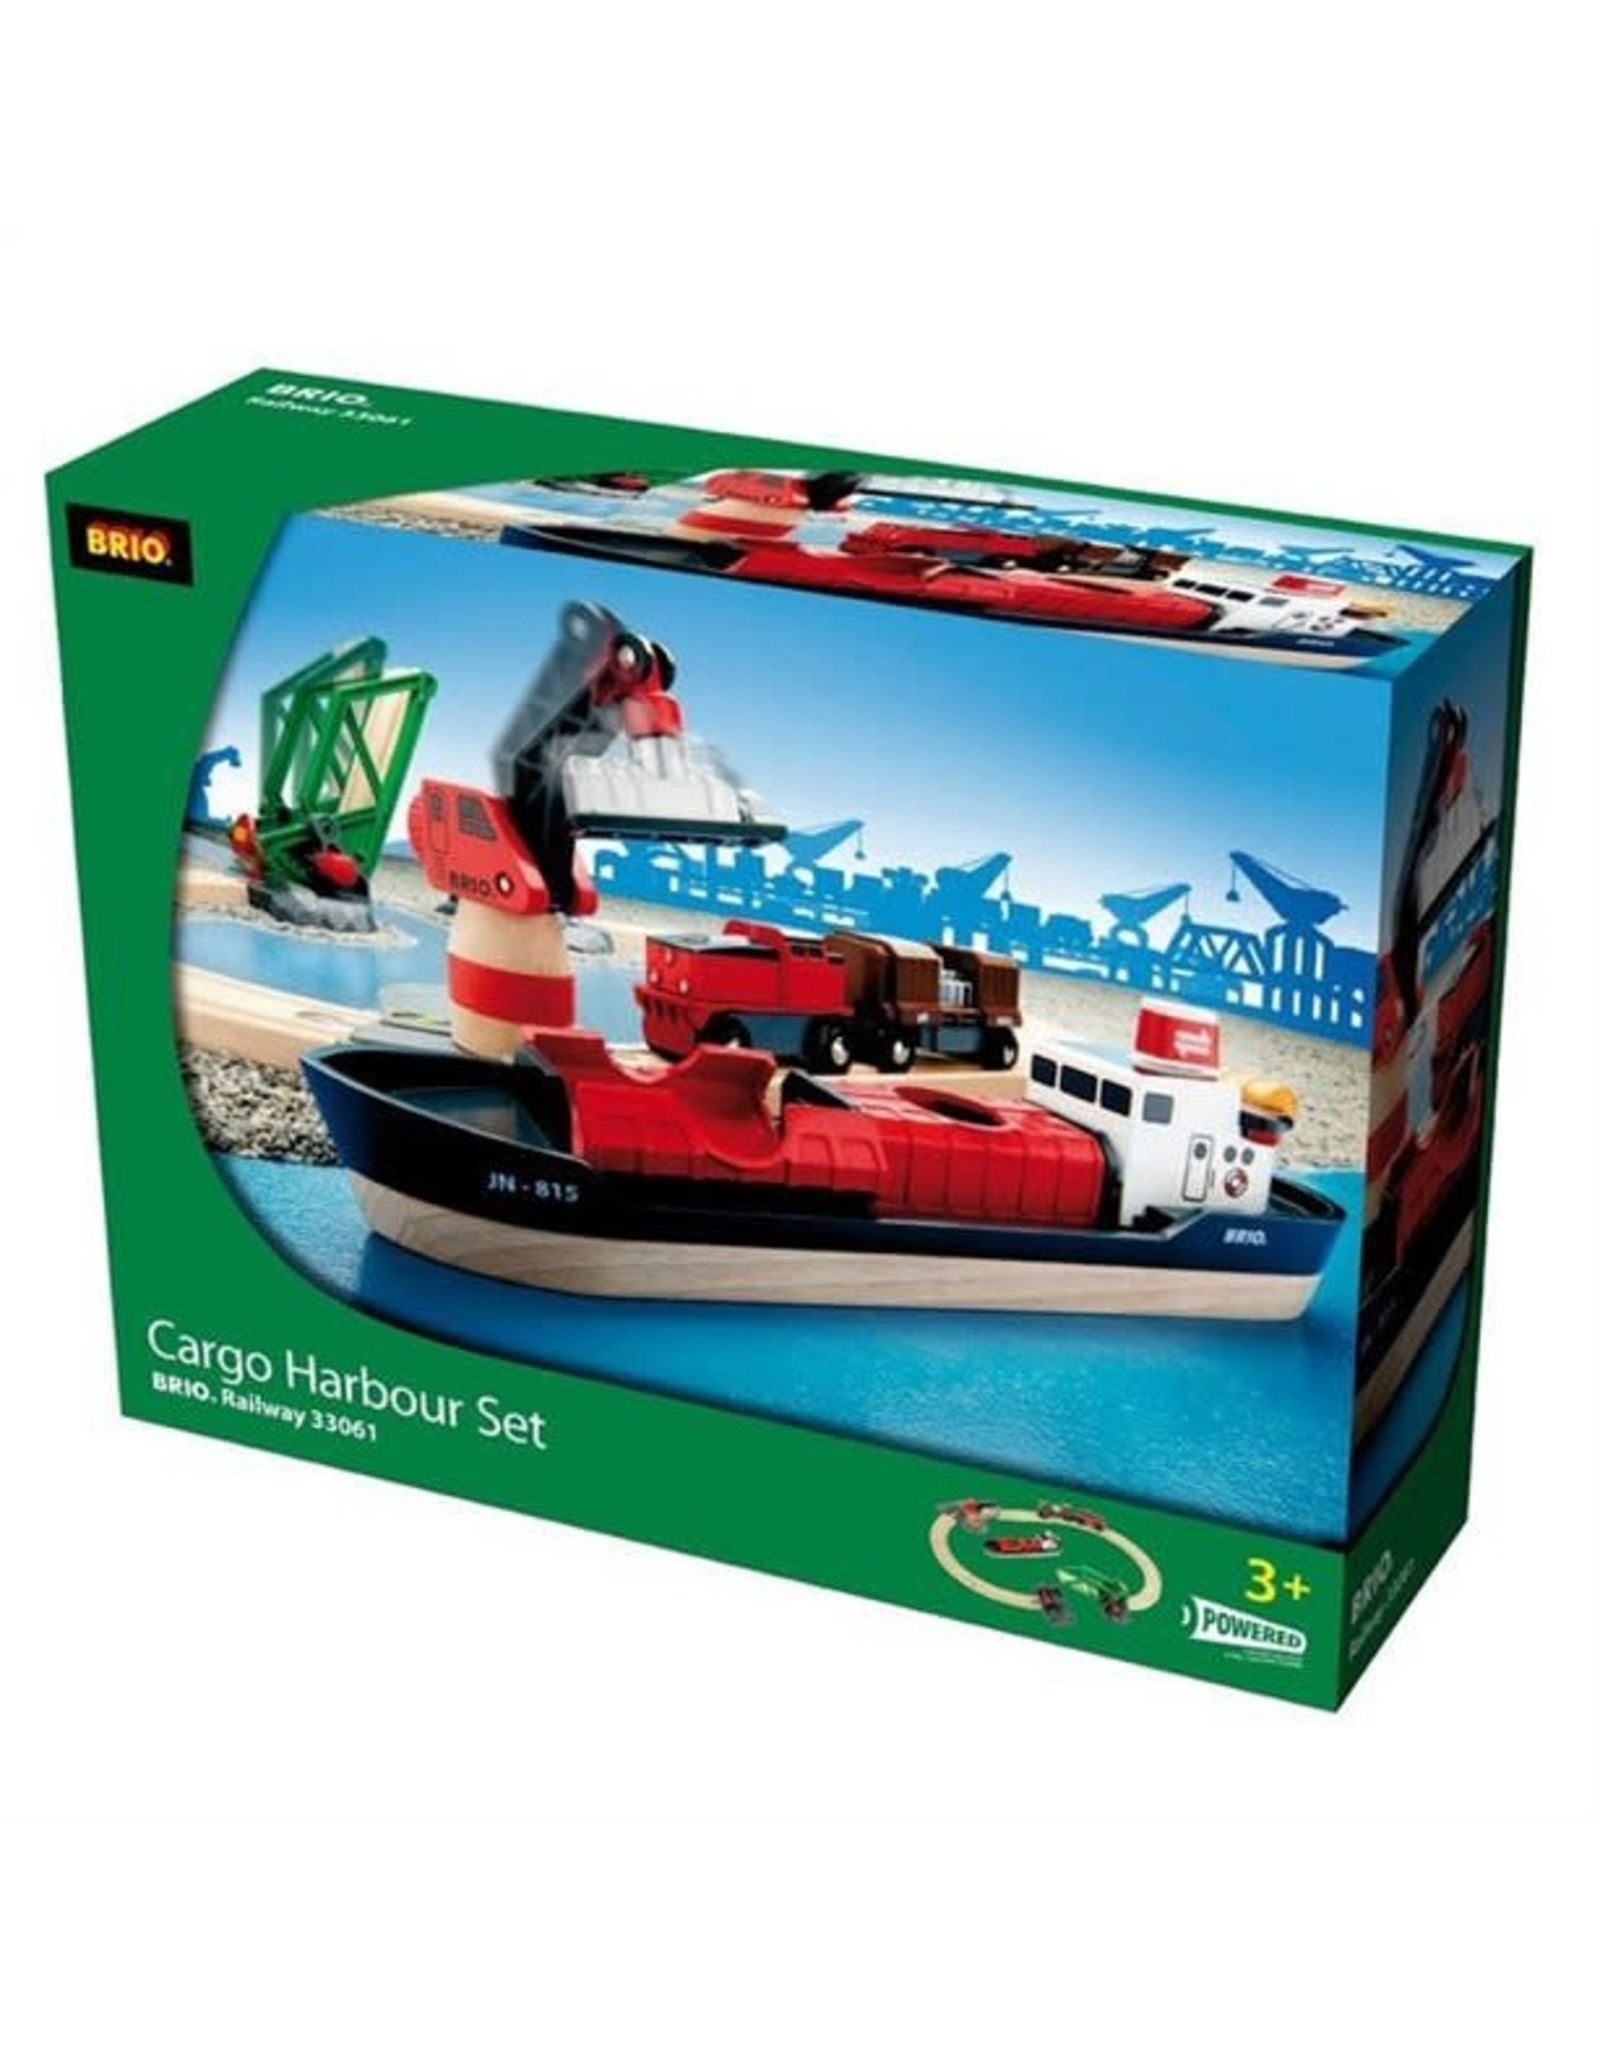 Brio BRIO Cargo Harbour Set